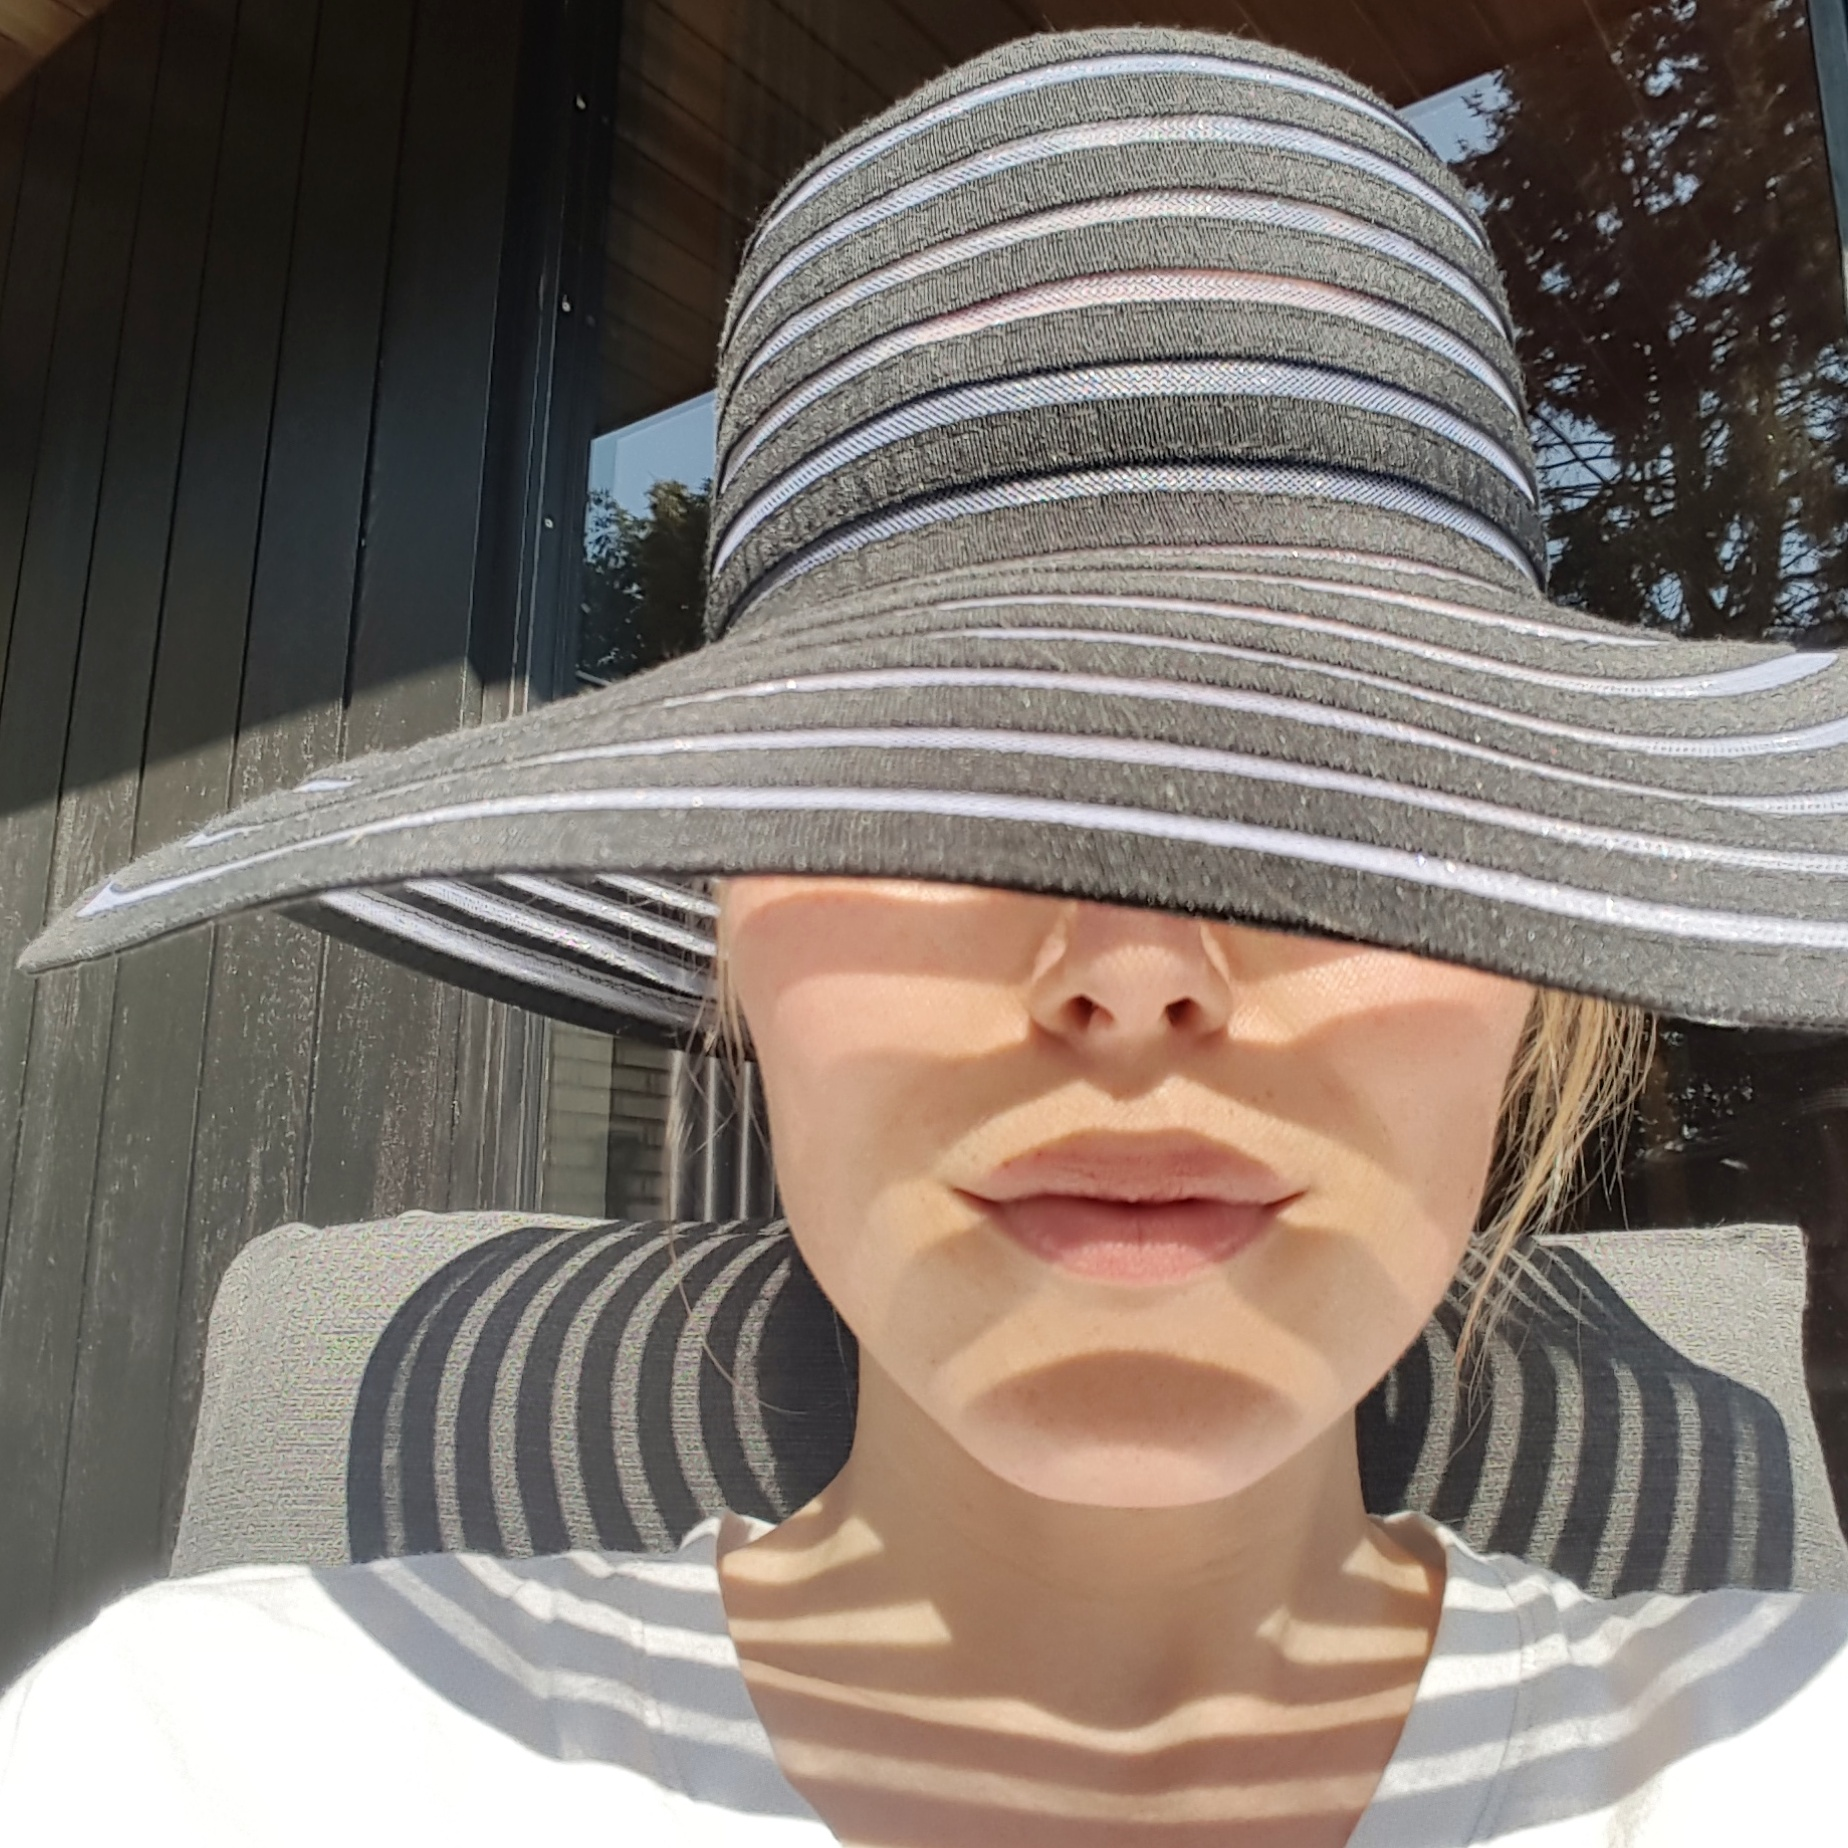 Wear a sunhat for good sun protection of your face and neck